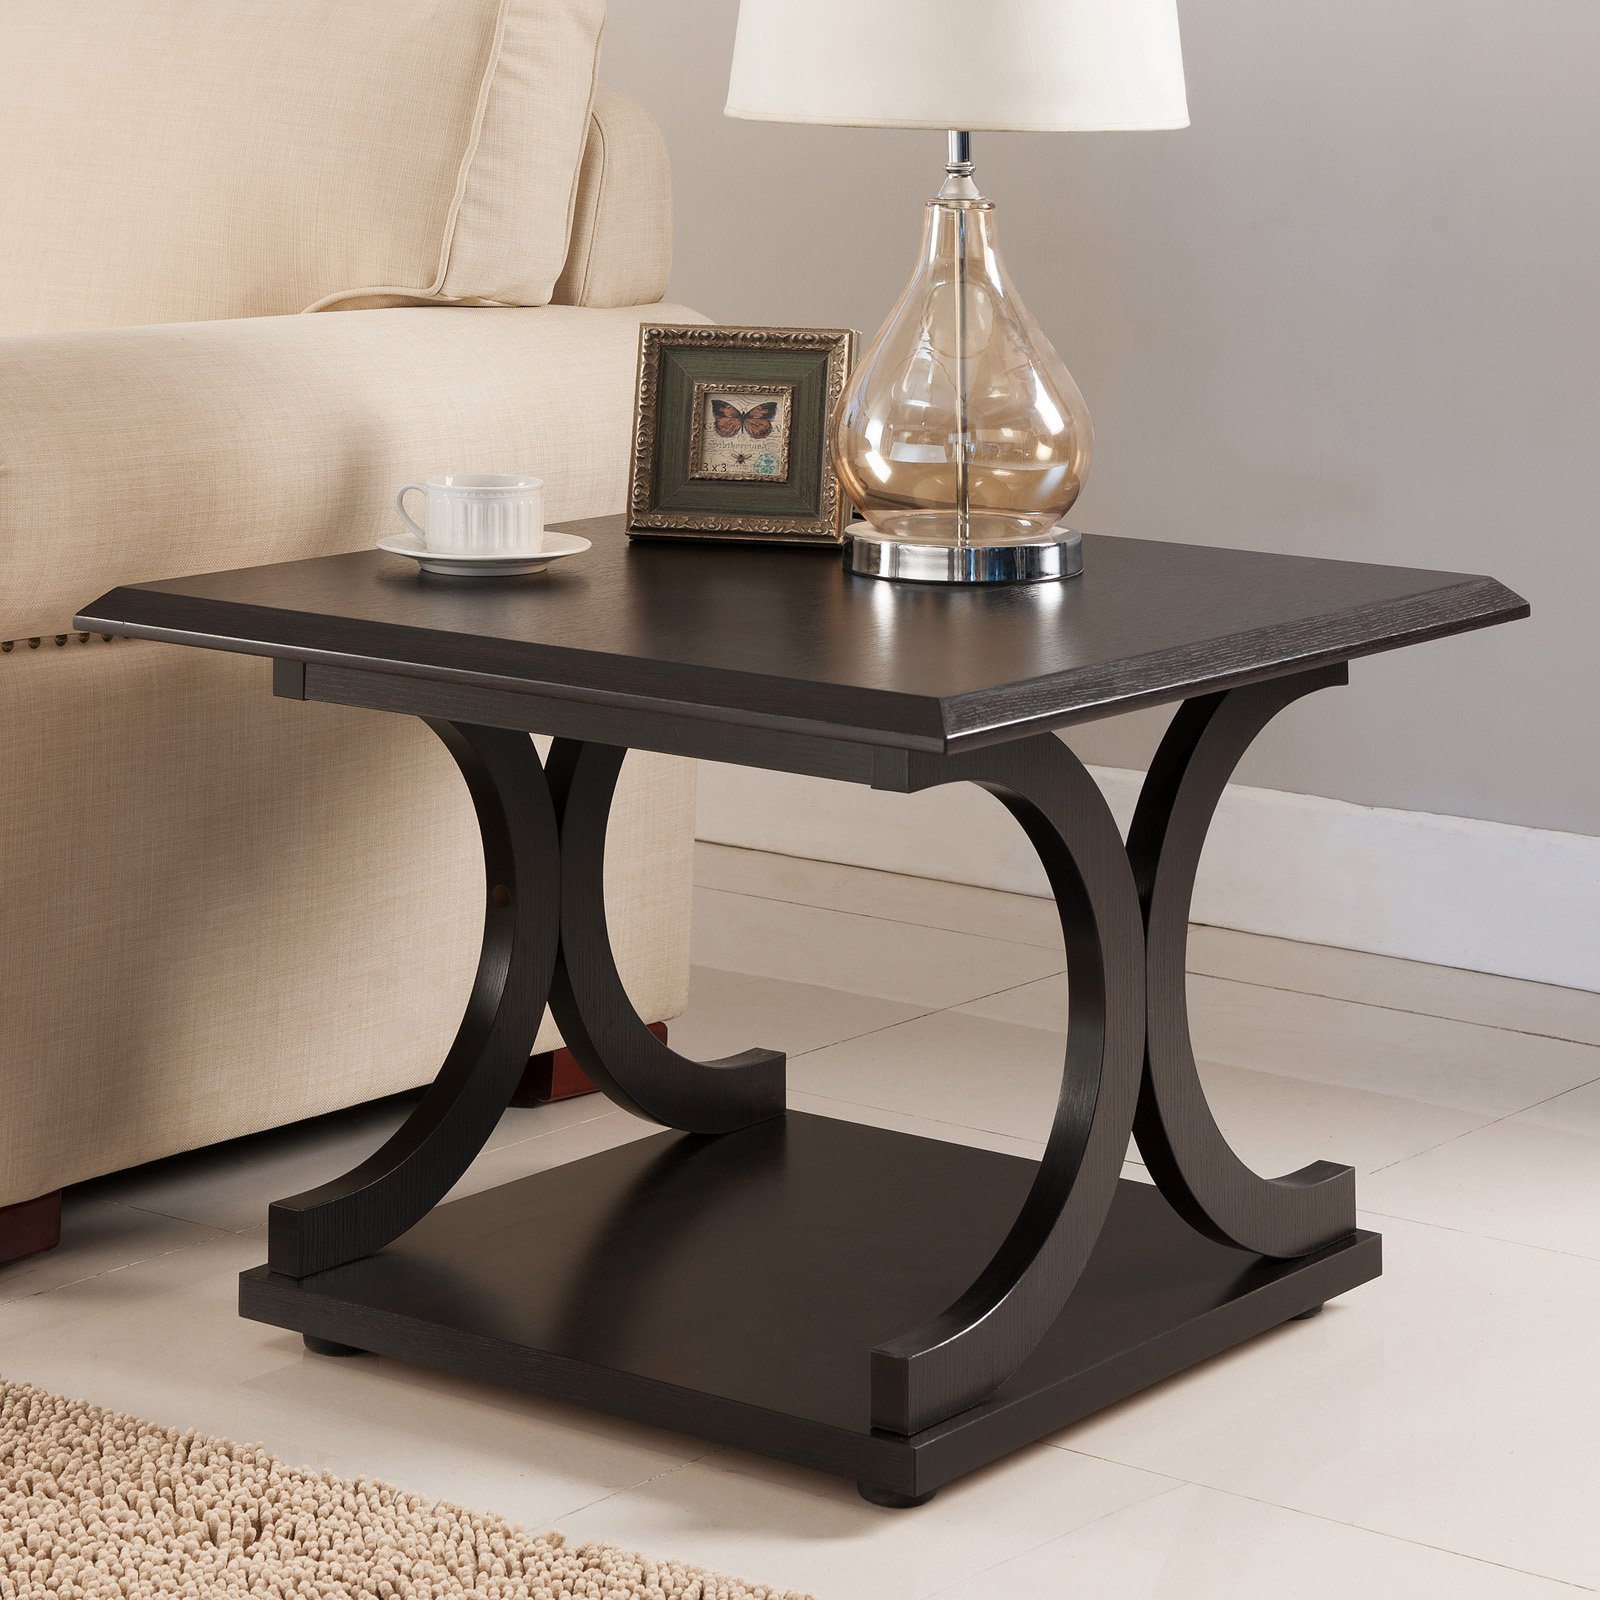 Furniture of America Curved End Table